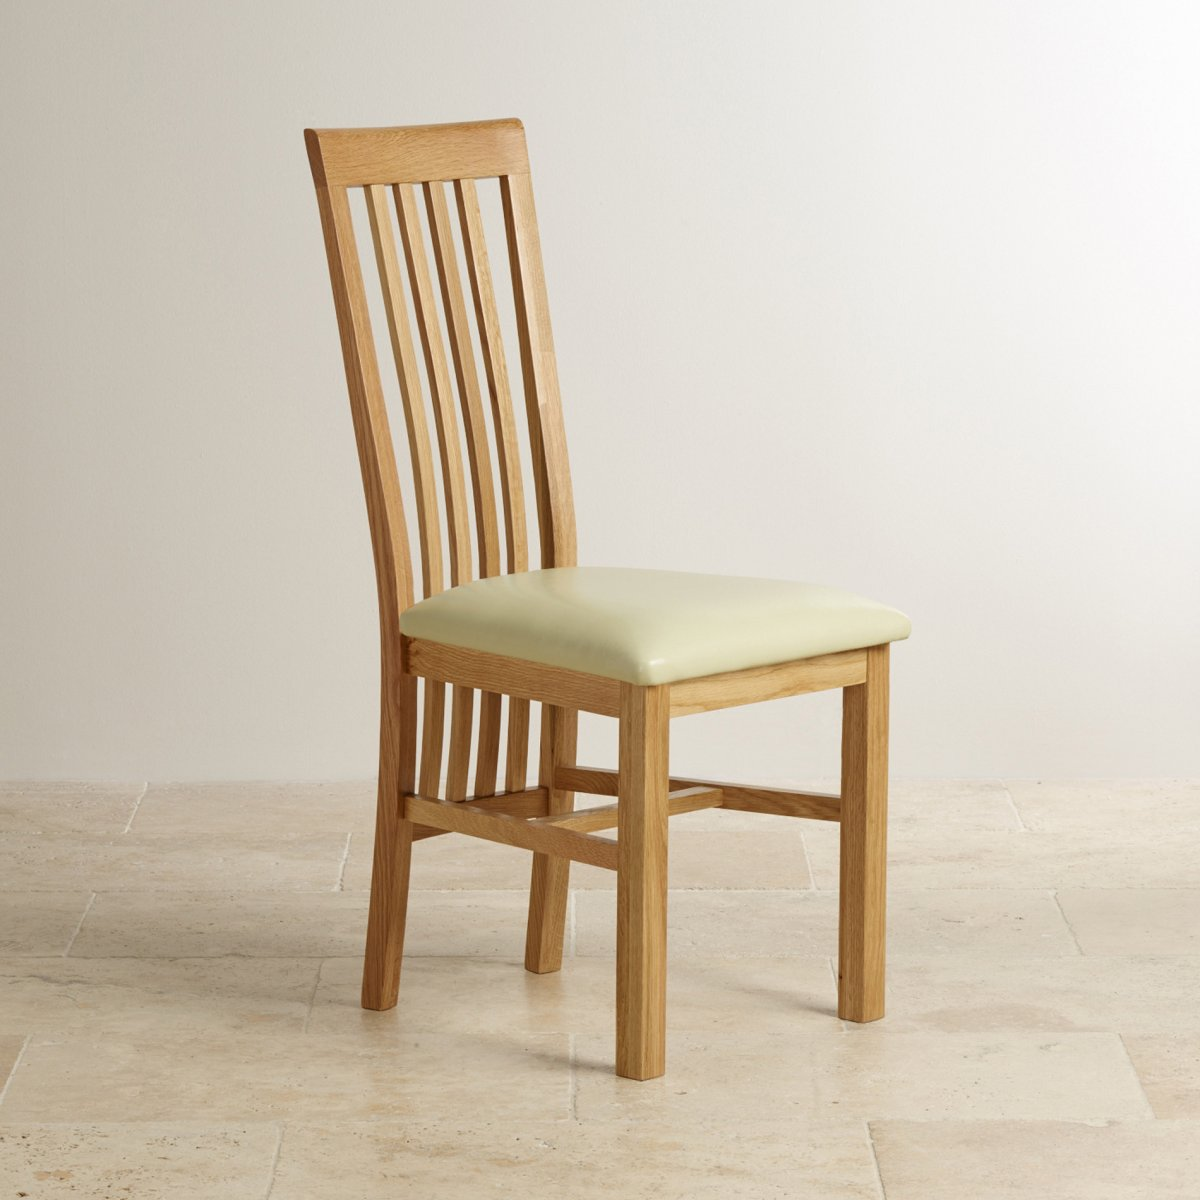 Solid Oak High Slat Back and Cream Leather Dining Chair : slat back natural solid oak and cream leather dining chair 567adc87038510d1d241f30a27c717bede92de0c531f3 from www.oakfurnitureland.co.uk size 1200 x 1200 jpeg 128kB